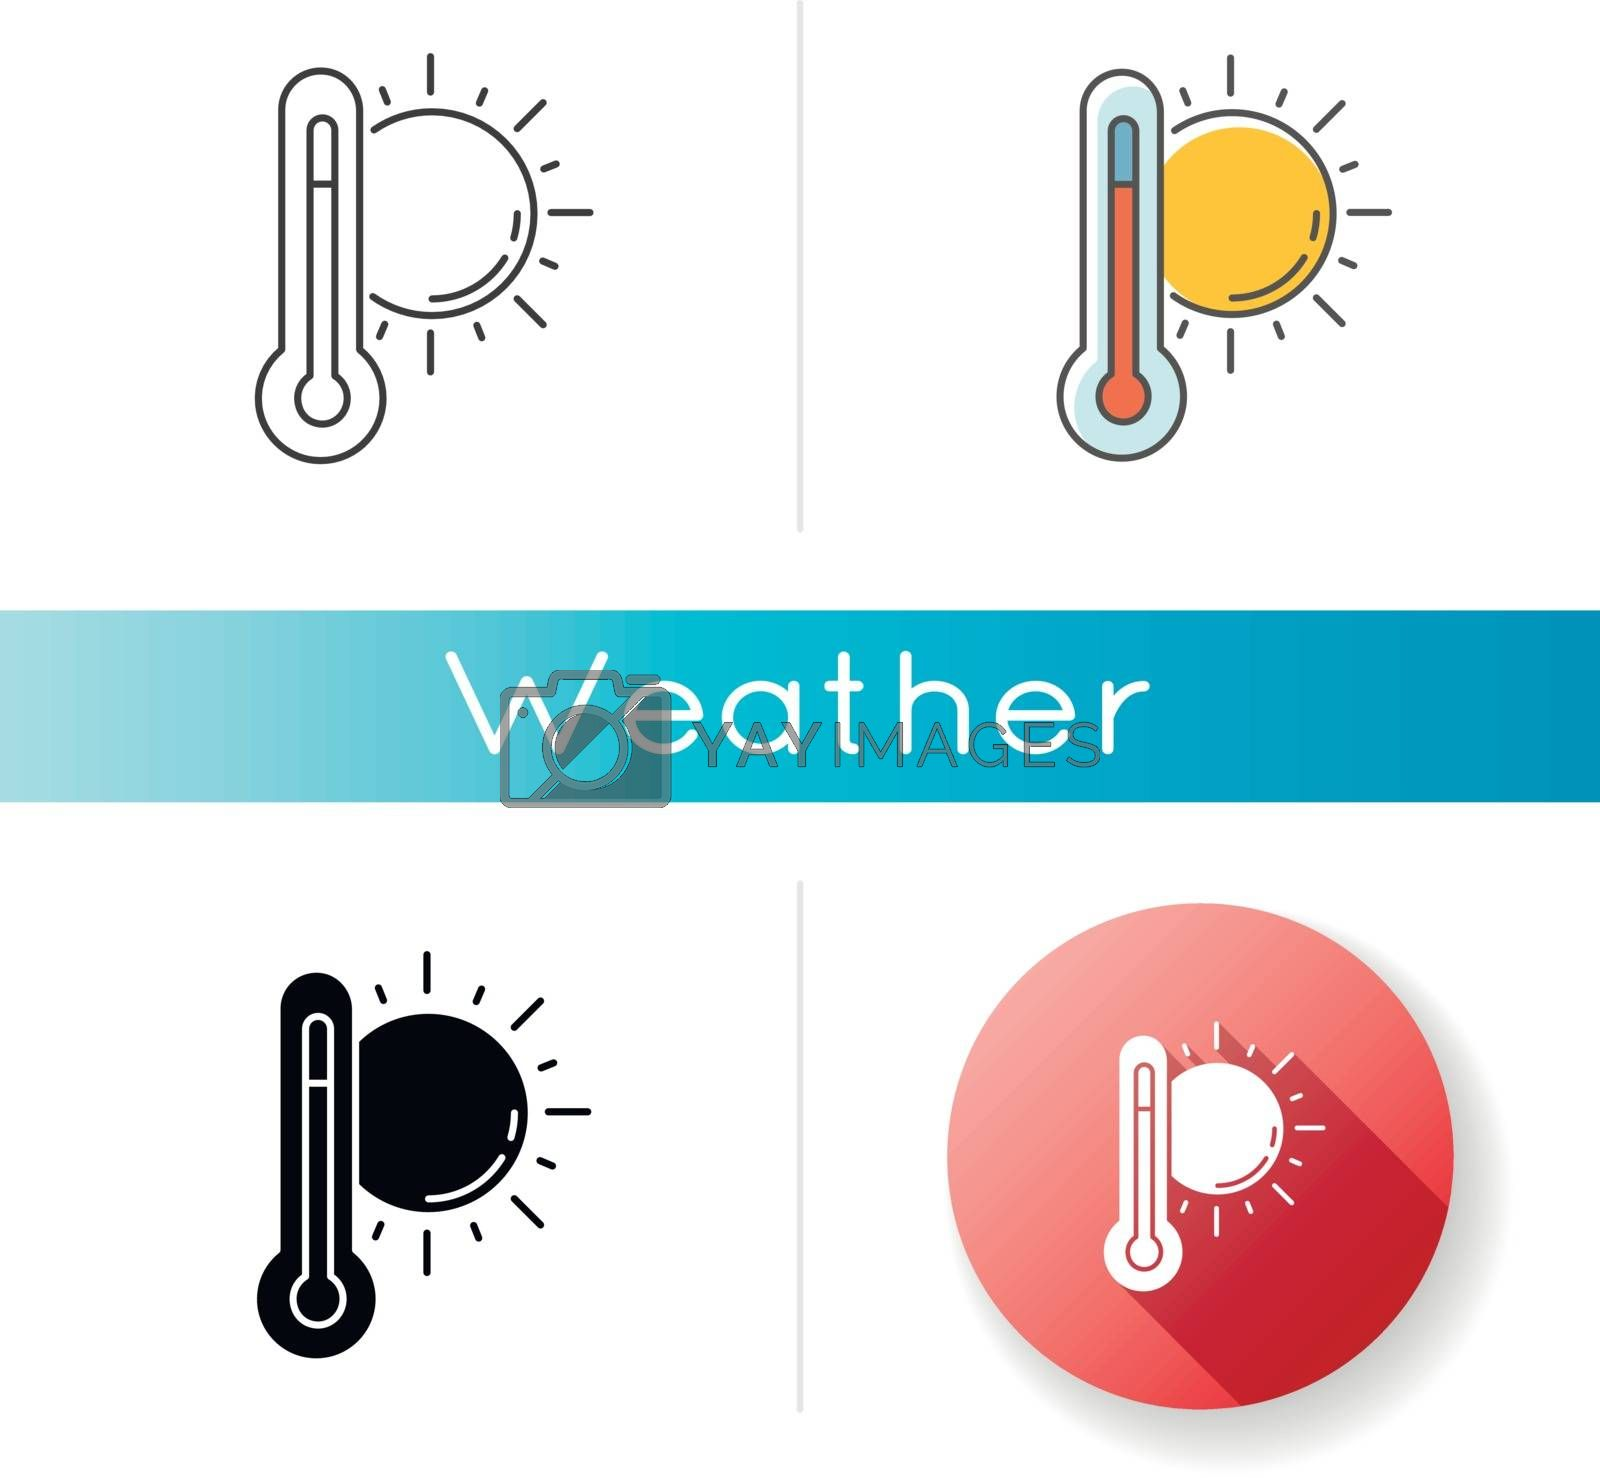 Hot weather icon. Linear black and RGB color styles. Summer heat, seasonal forecasting, meteorology science. Air temperature prediction. Thermometer with sun isolated vector illustrations